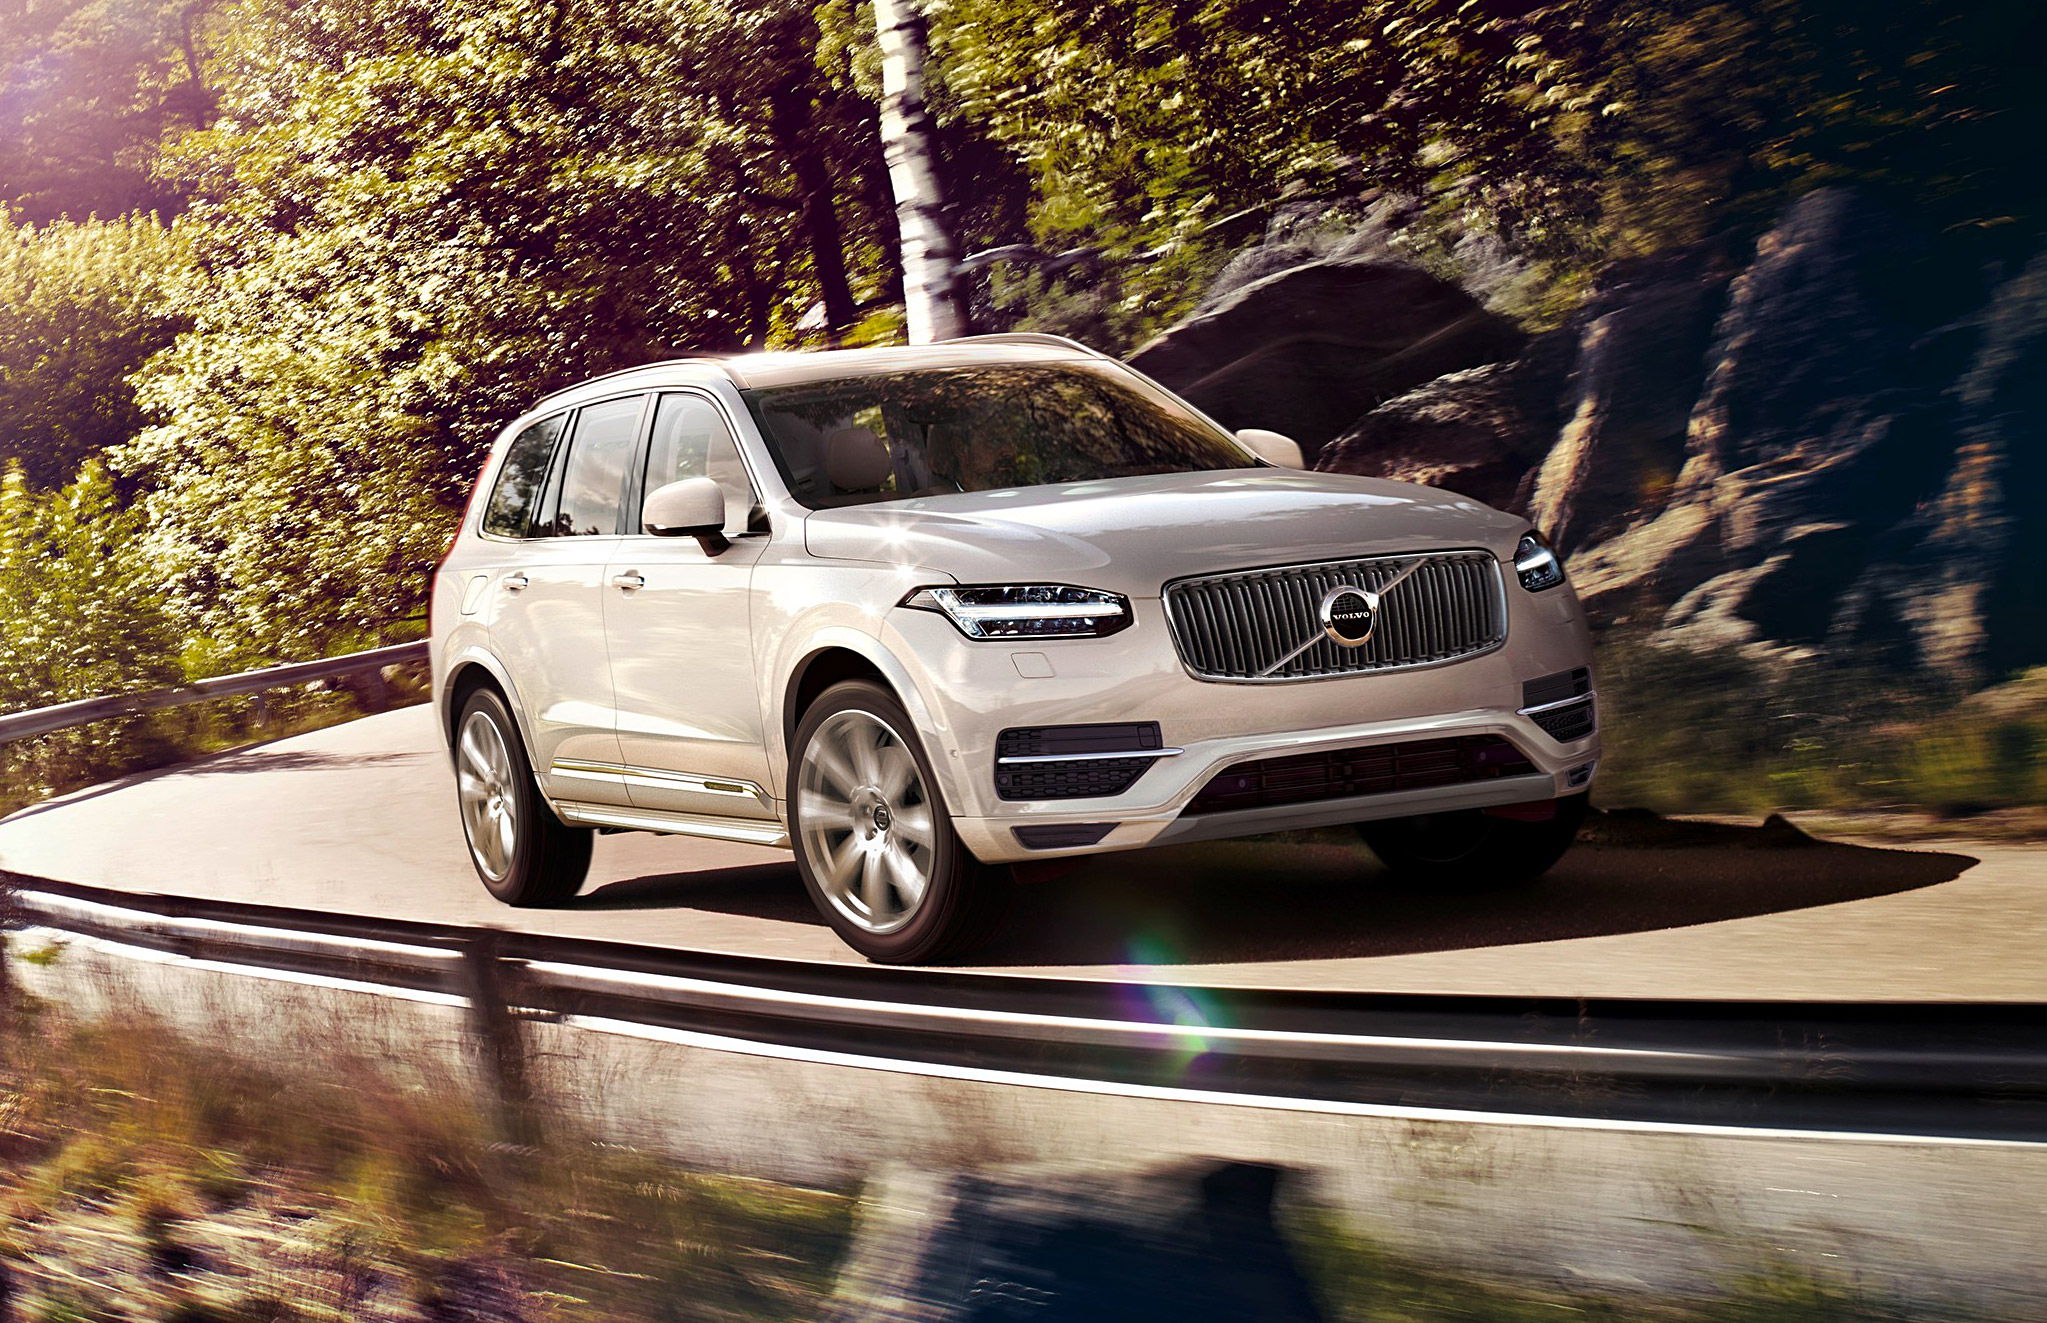 Road-Test On Volvo's Award-Winning XC90 T8 Plug-in Hybrid